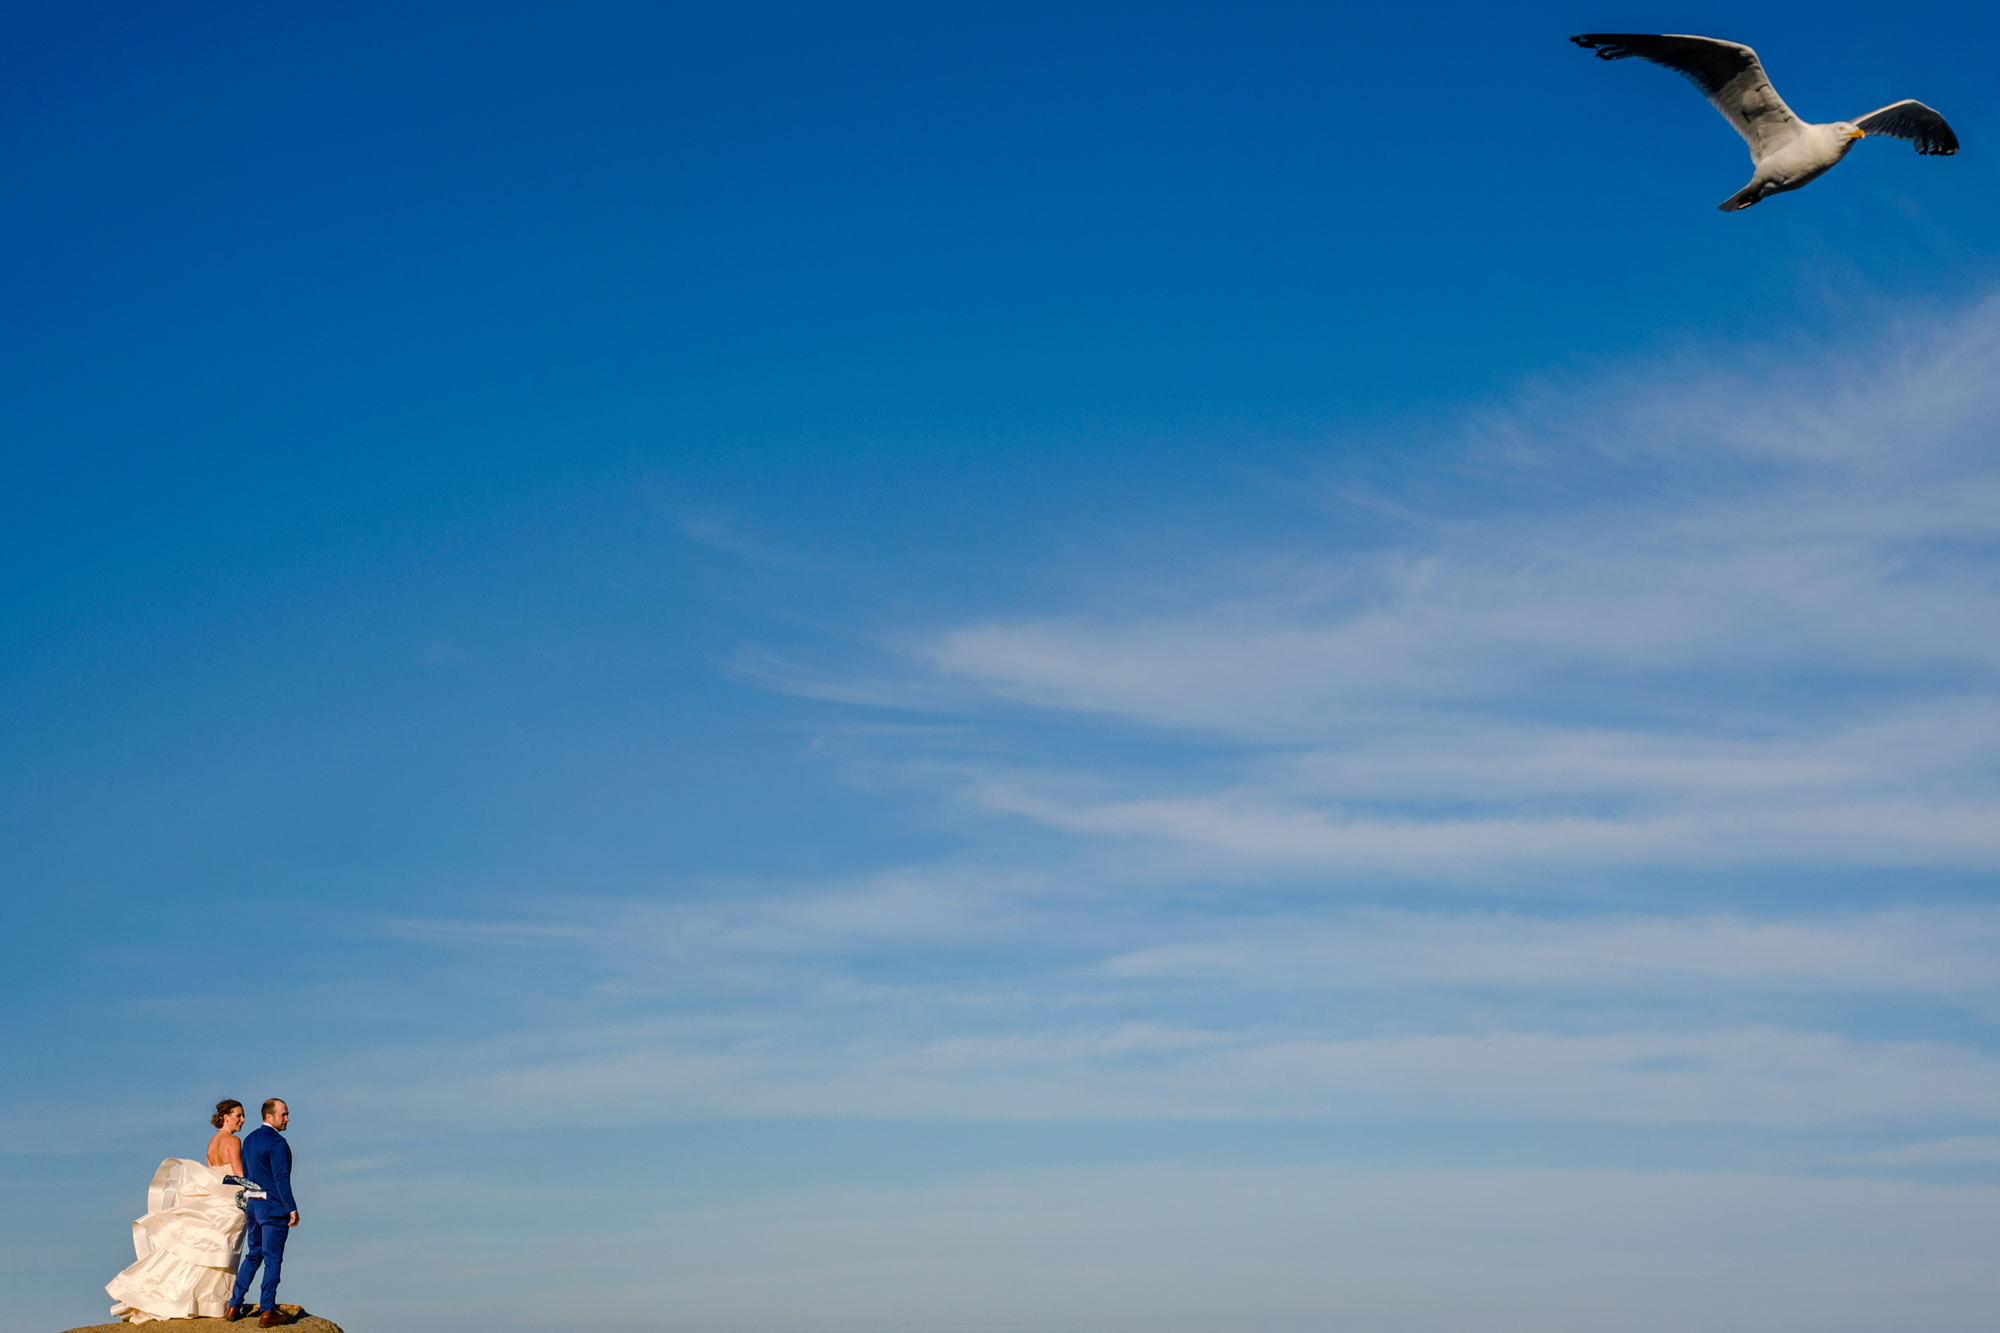 Seagull soars past couple on cliff - photo by Cooked Photography